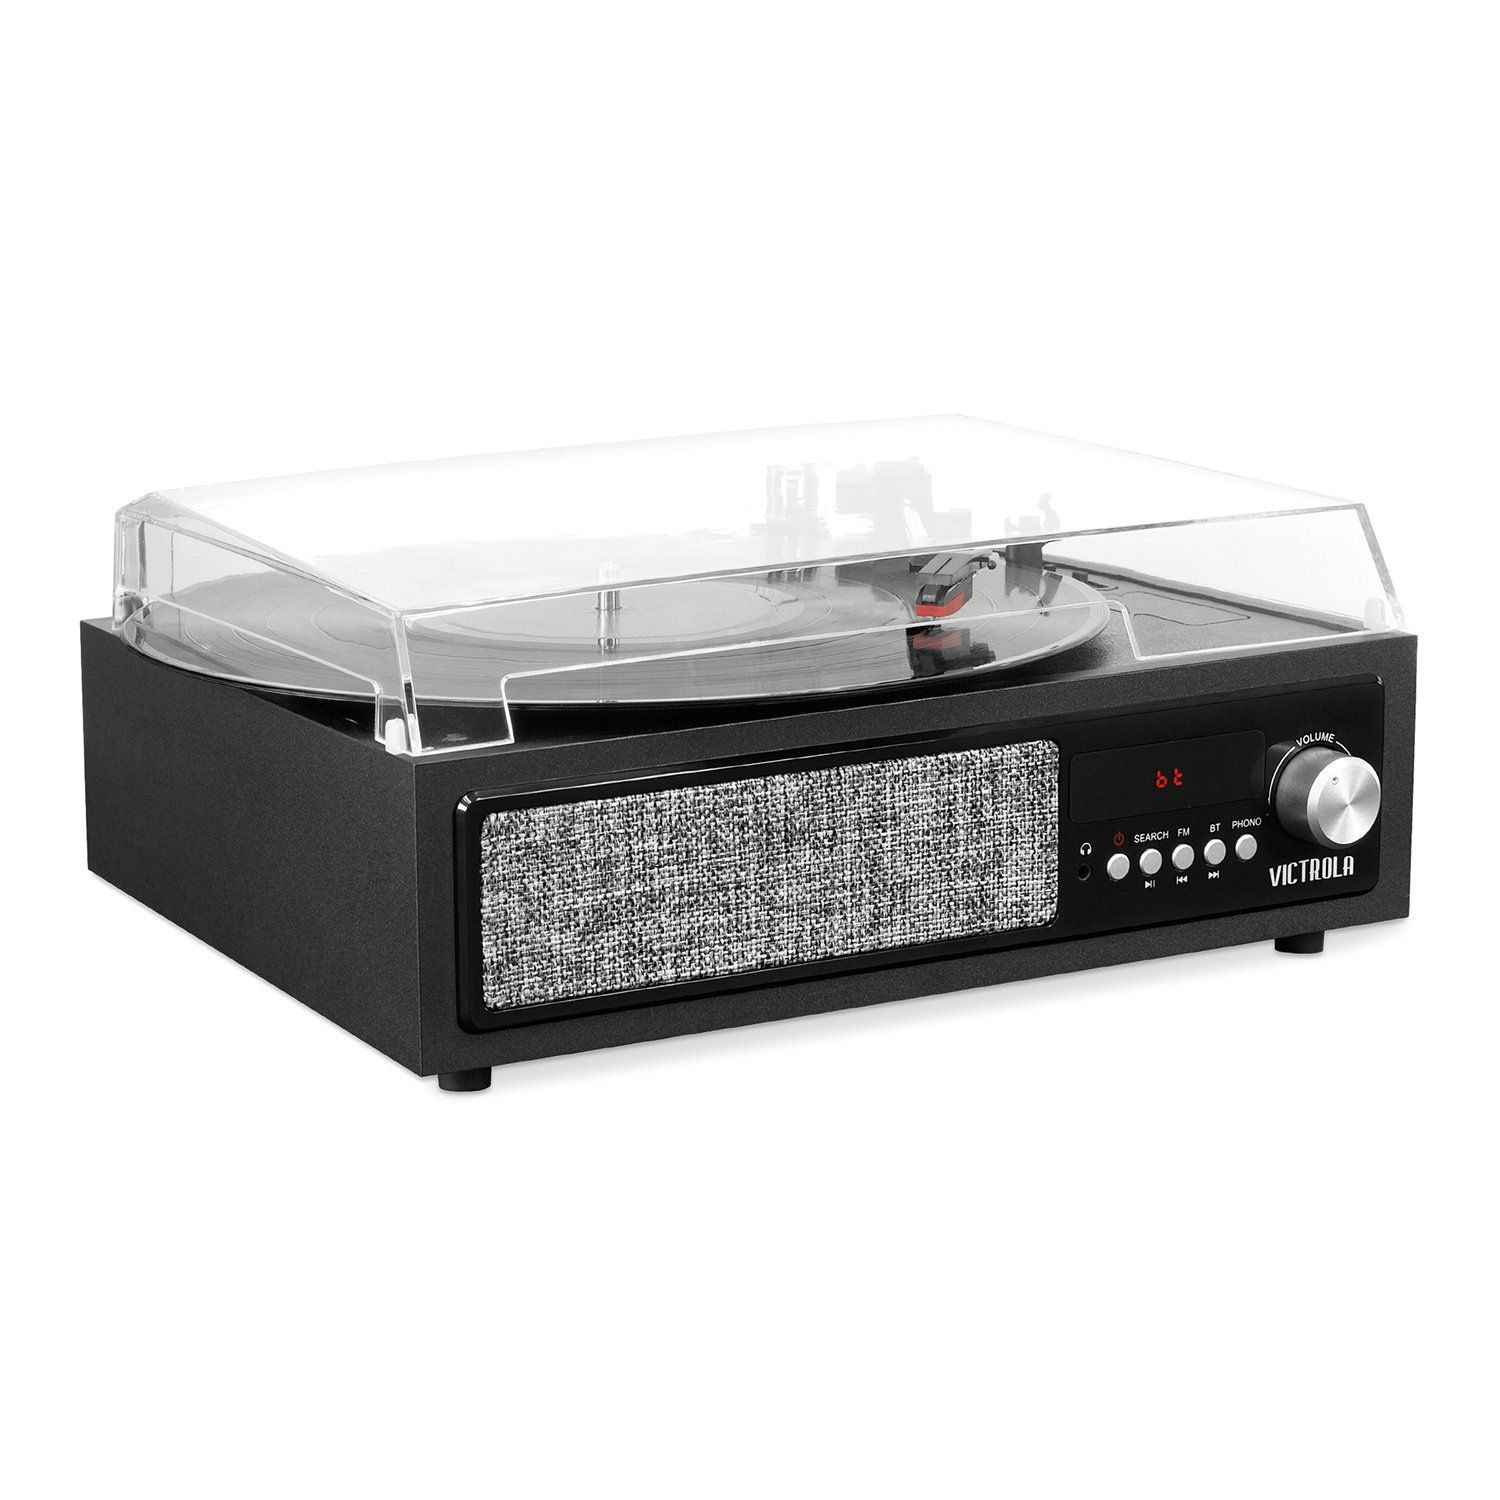 Victrola 3 In 1 Bluetooth Record Player With Built In Speakers Bluetooth Record Player Built In Speakers Record Player